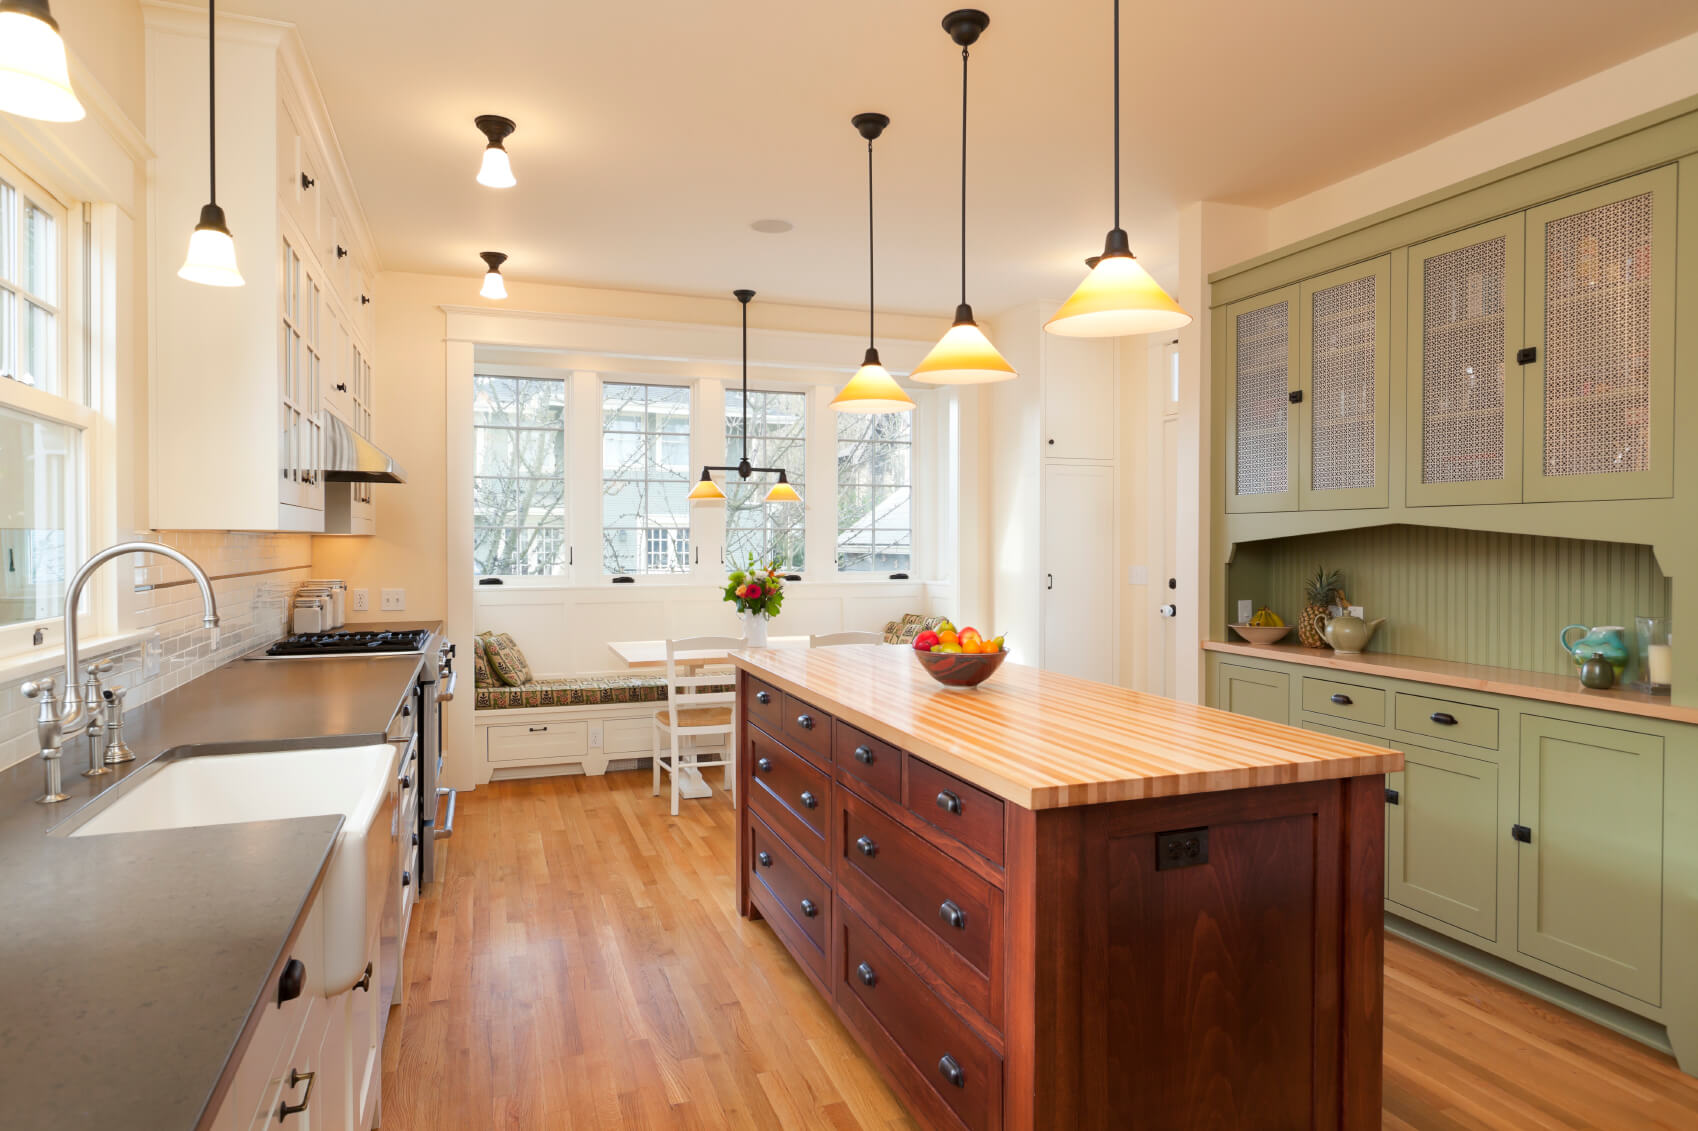 galley kitchen design ideas galley kitchen remodel ideas I include this kitchen in our galley kitchen photo gallery because the end is a long